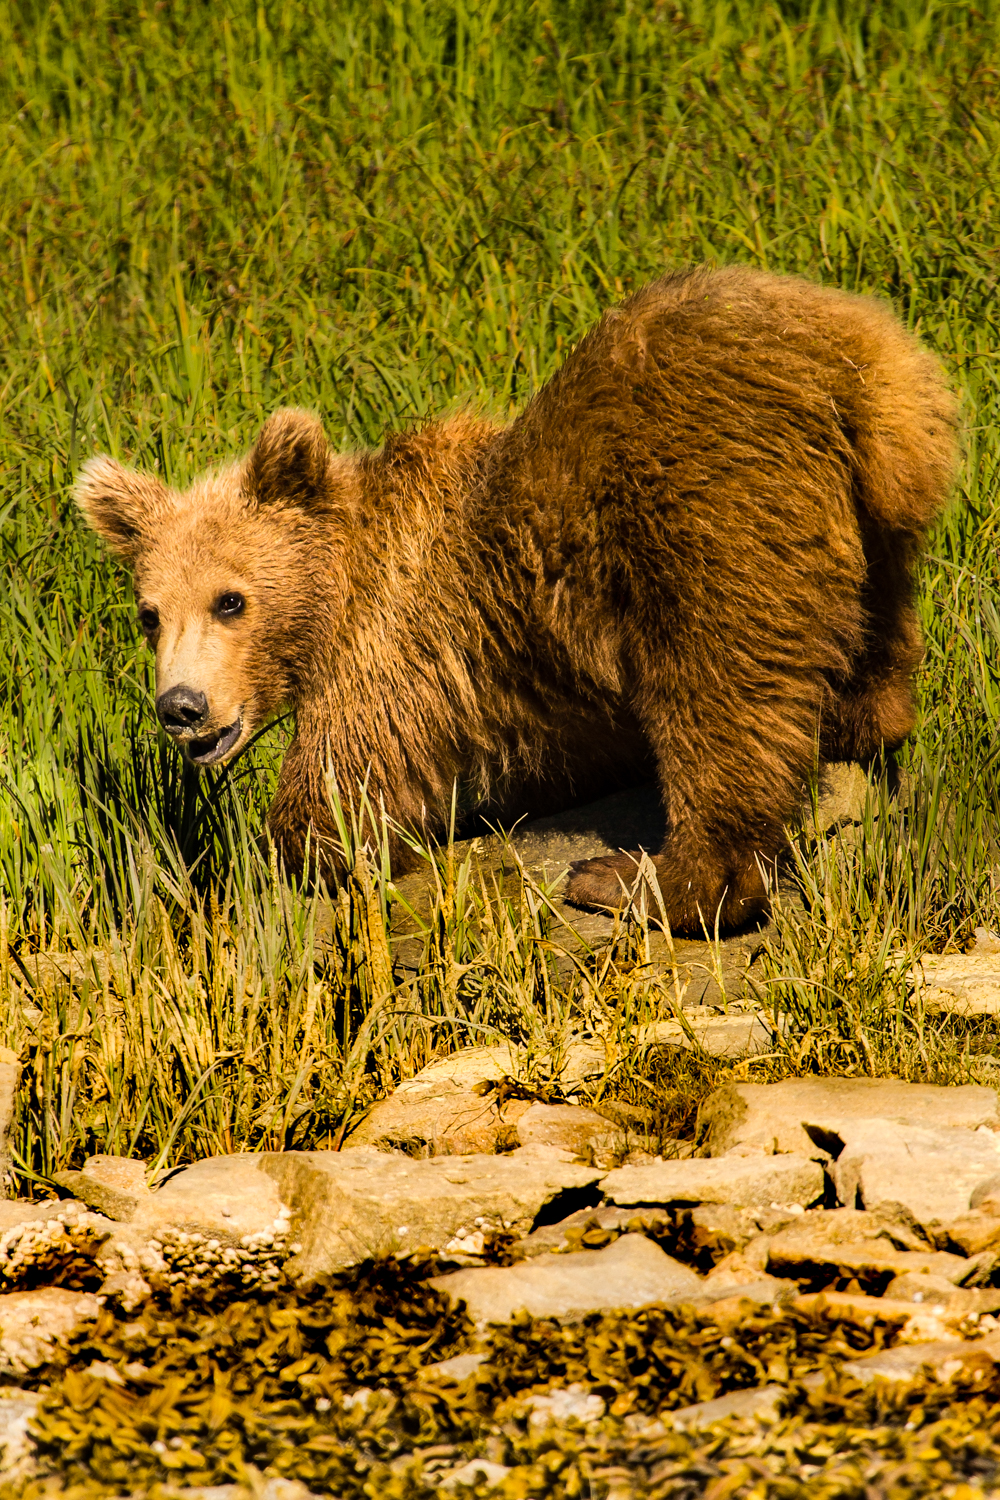 Yearling bear cub.